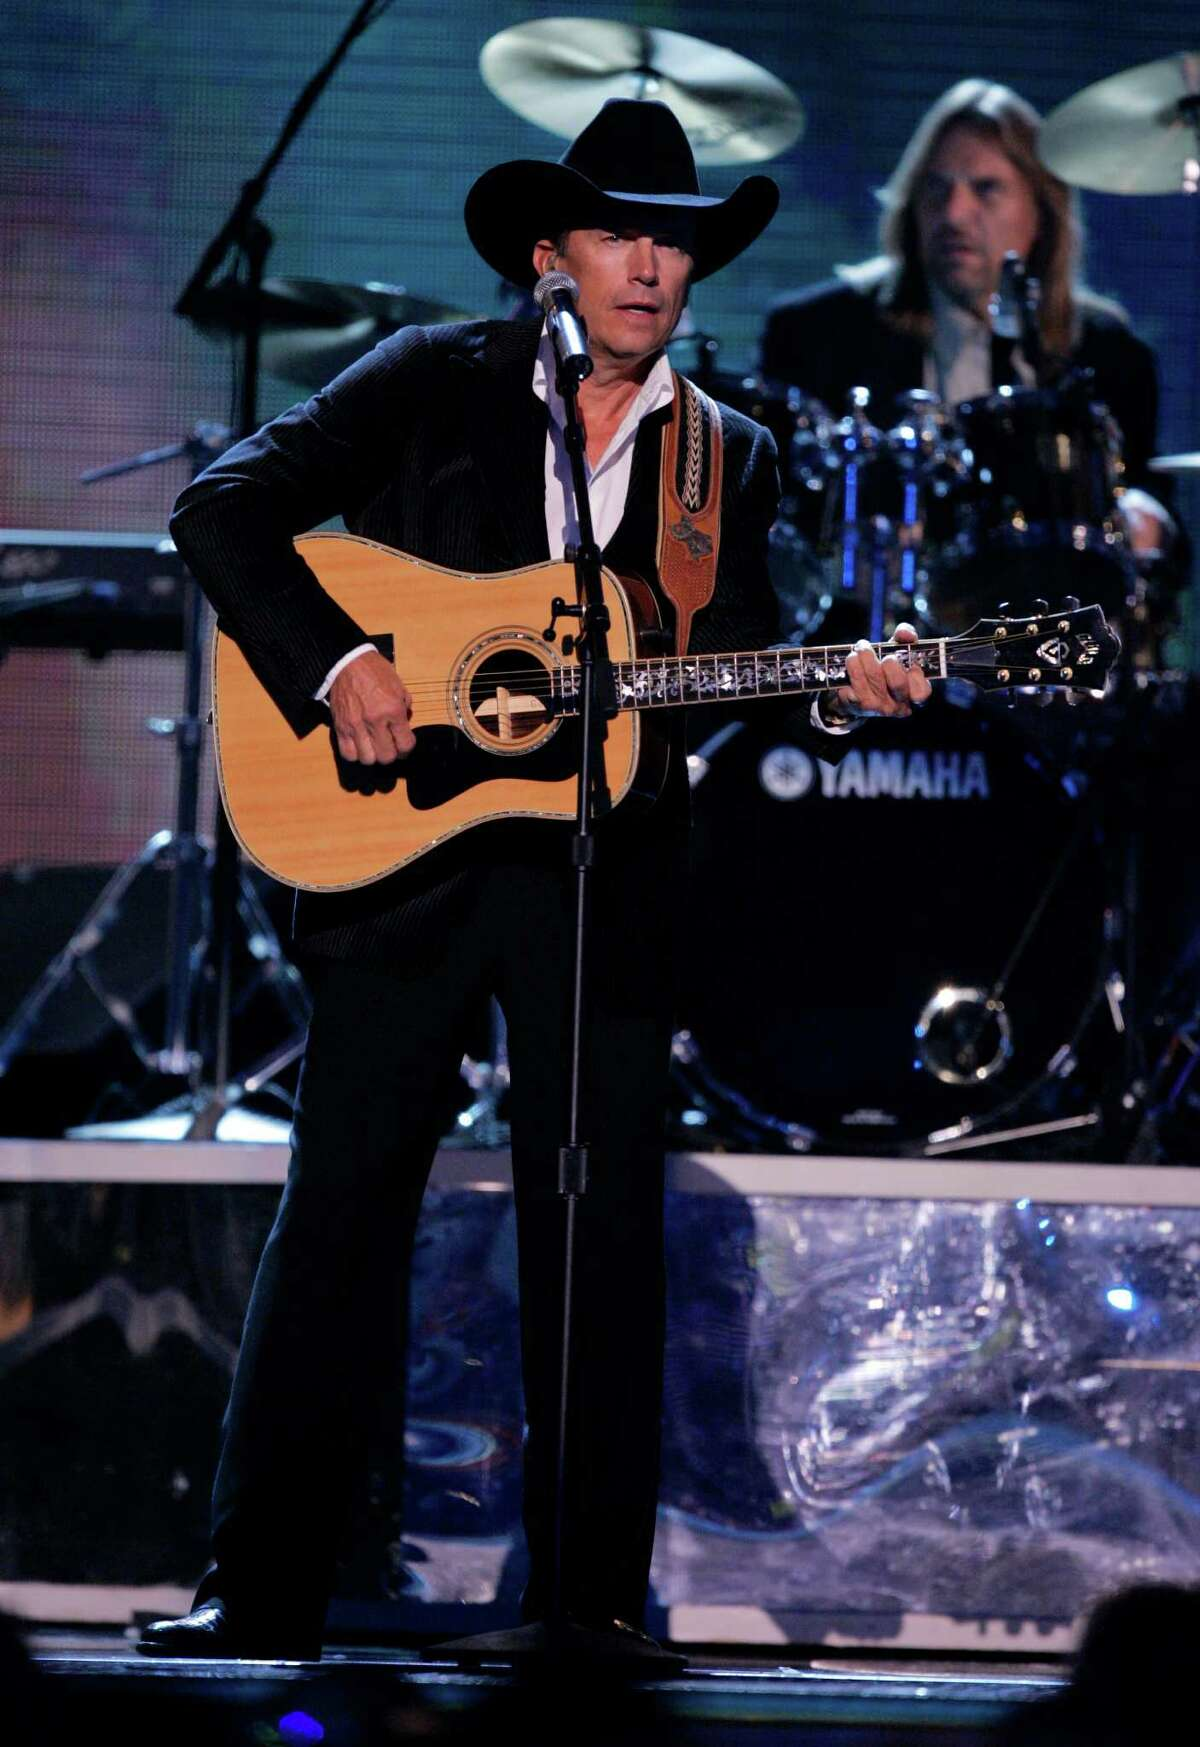 George Strait, nominated for male vocalist, album and musical event of the year, performs at the 39th Annual Country Music Association Awards in New York on Tuesday, Nov. 15, 2005.